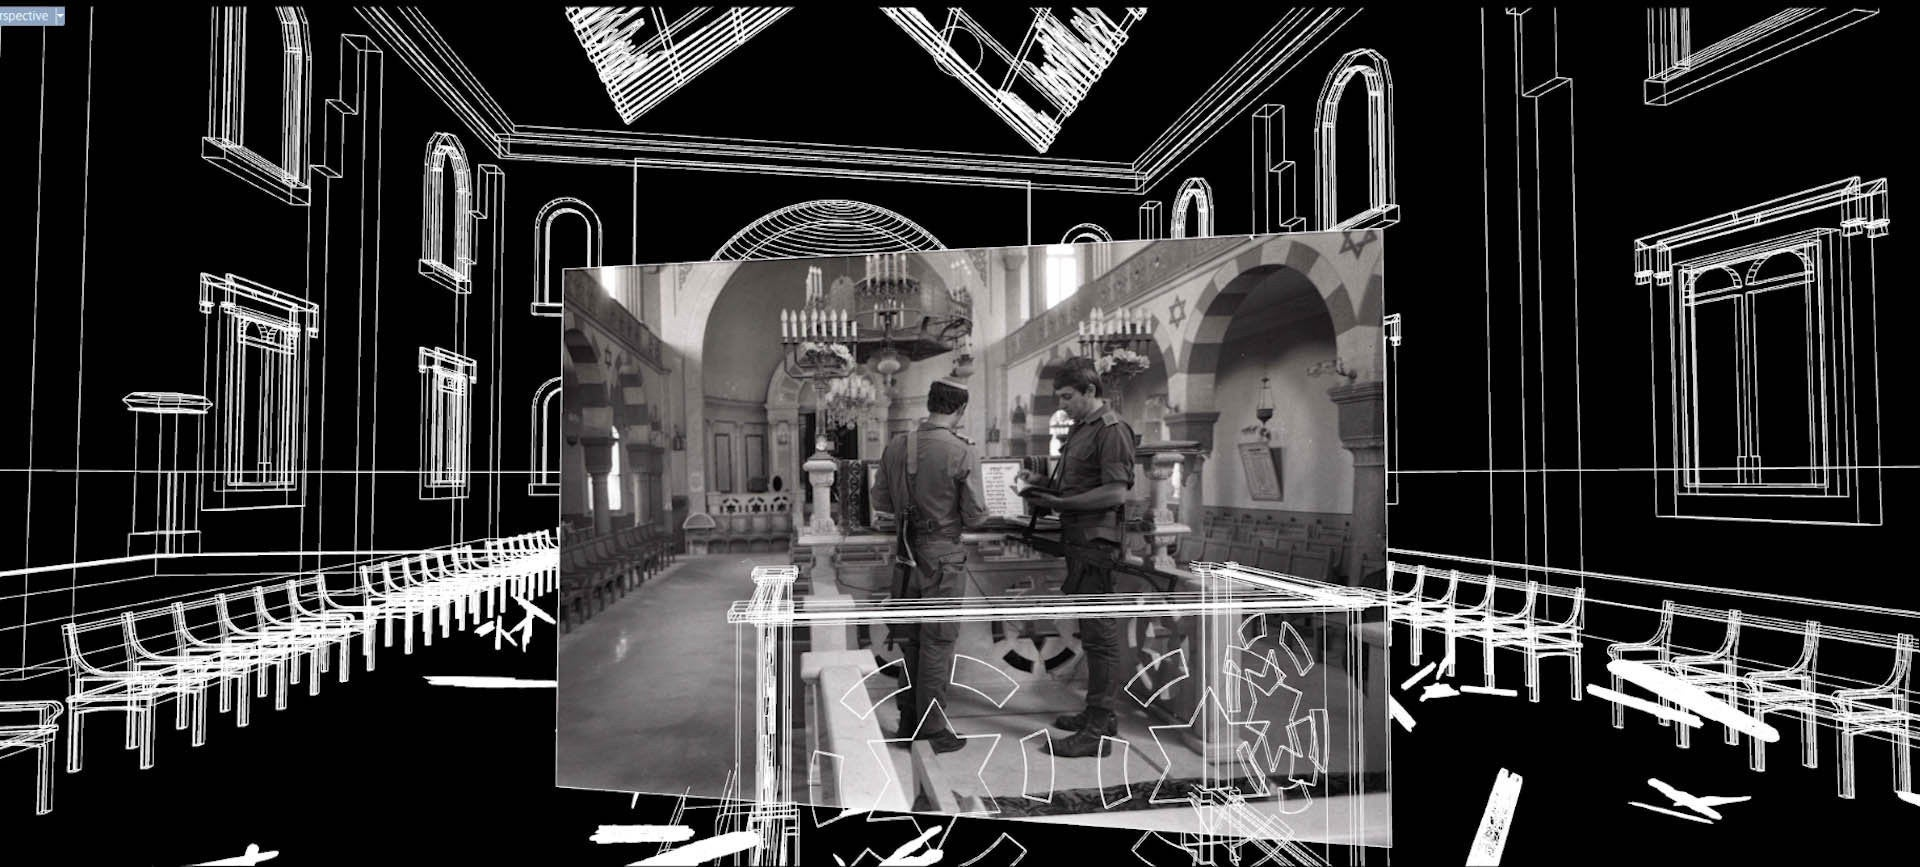 Photos and artwork in Dor Zlekha Levy's 2019 exhibition on the Magen Avraham Synagogue in Beirut.